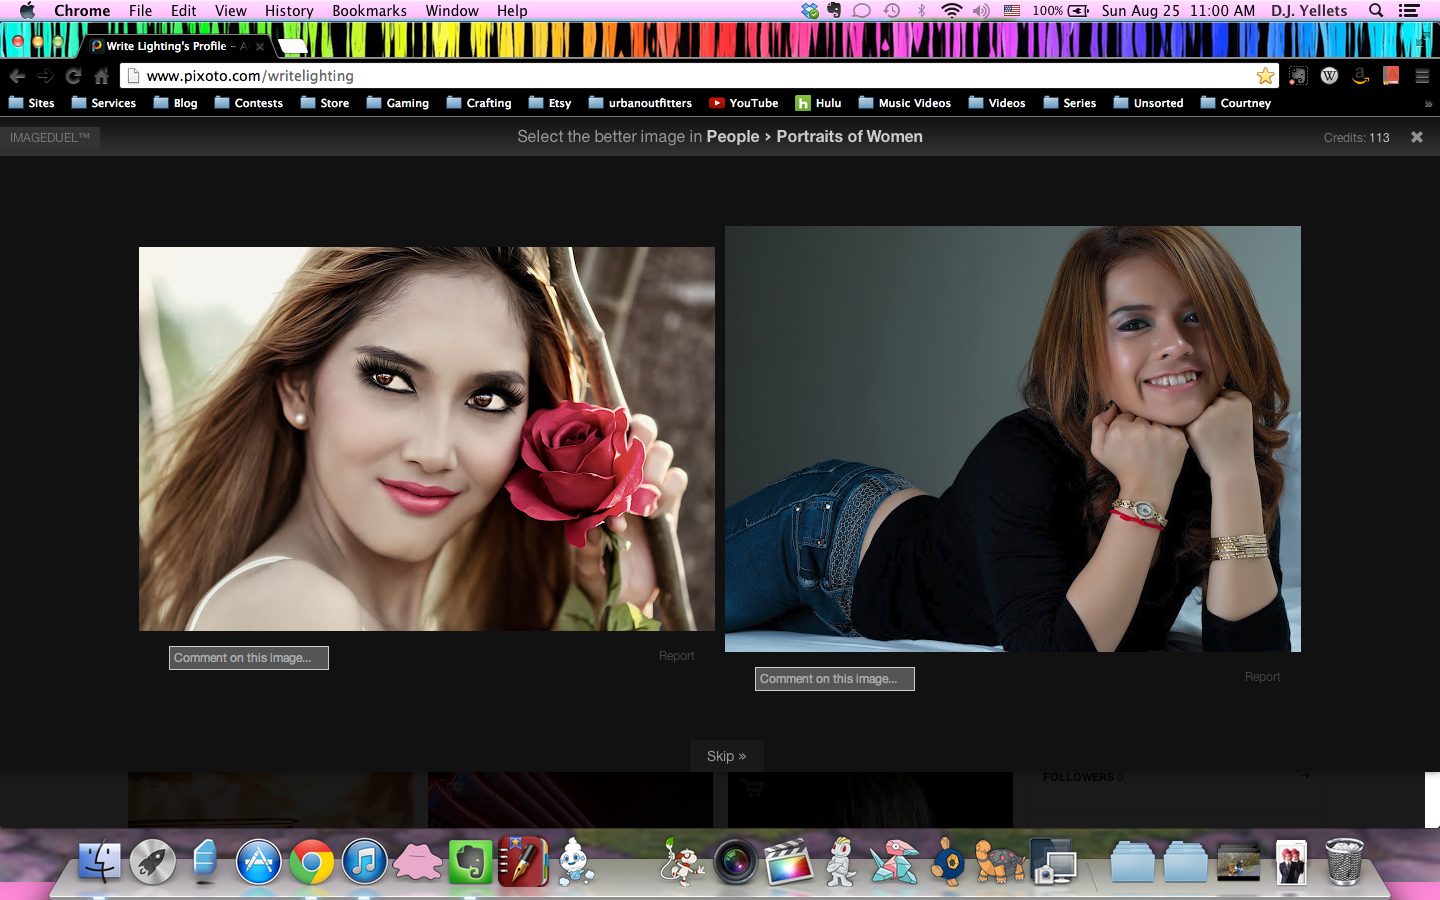 """As you can see on the left, there's a lot of over-processed """"portrait professional"""" styled images."""